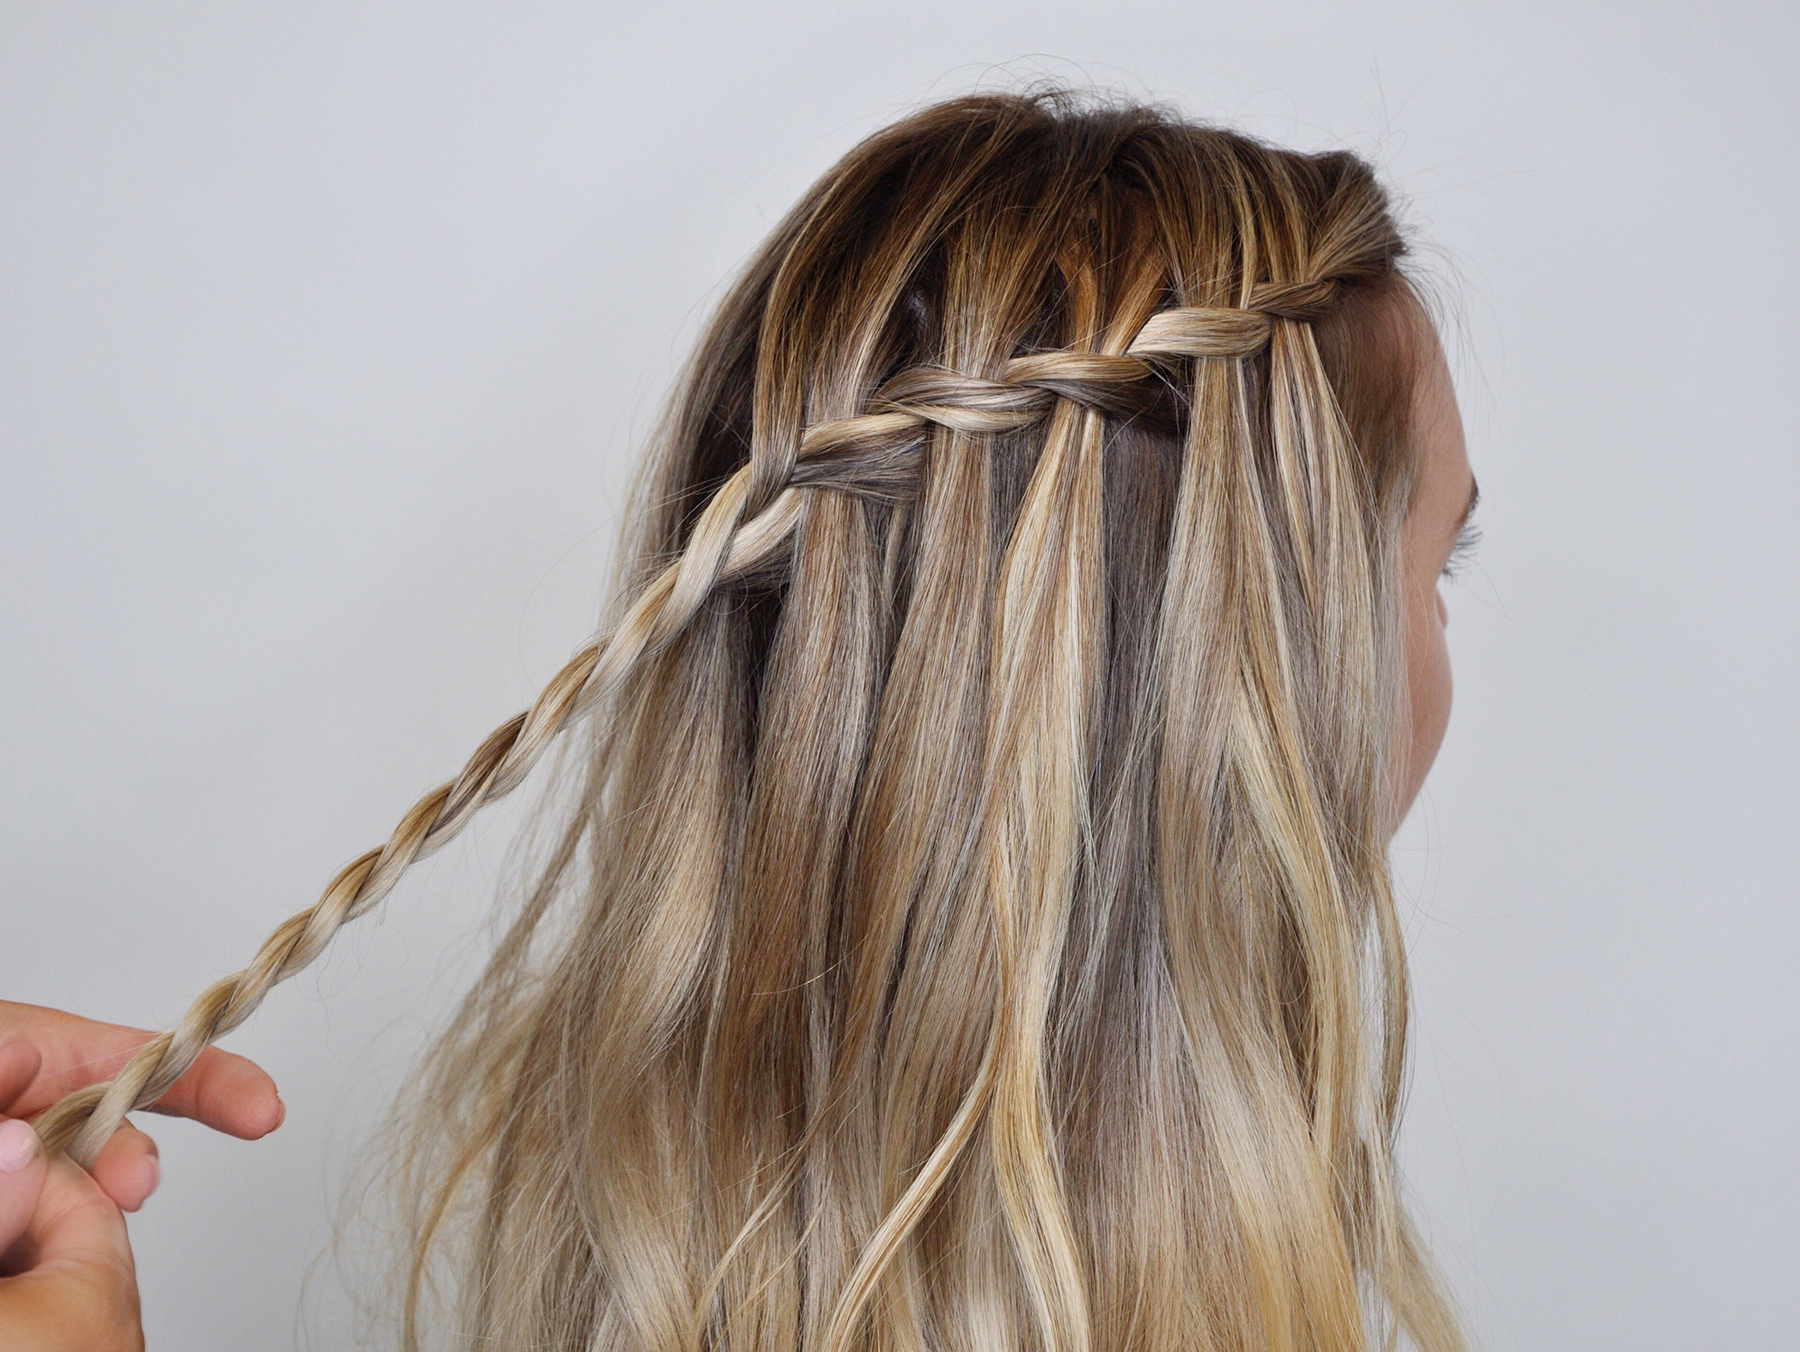 Real Simple Regarding Trendy High Waterfall Braided Hairstyles (View 20 of 20)